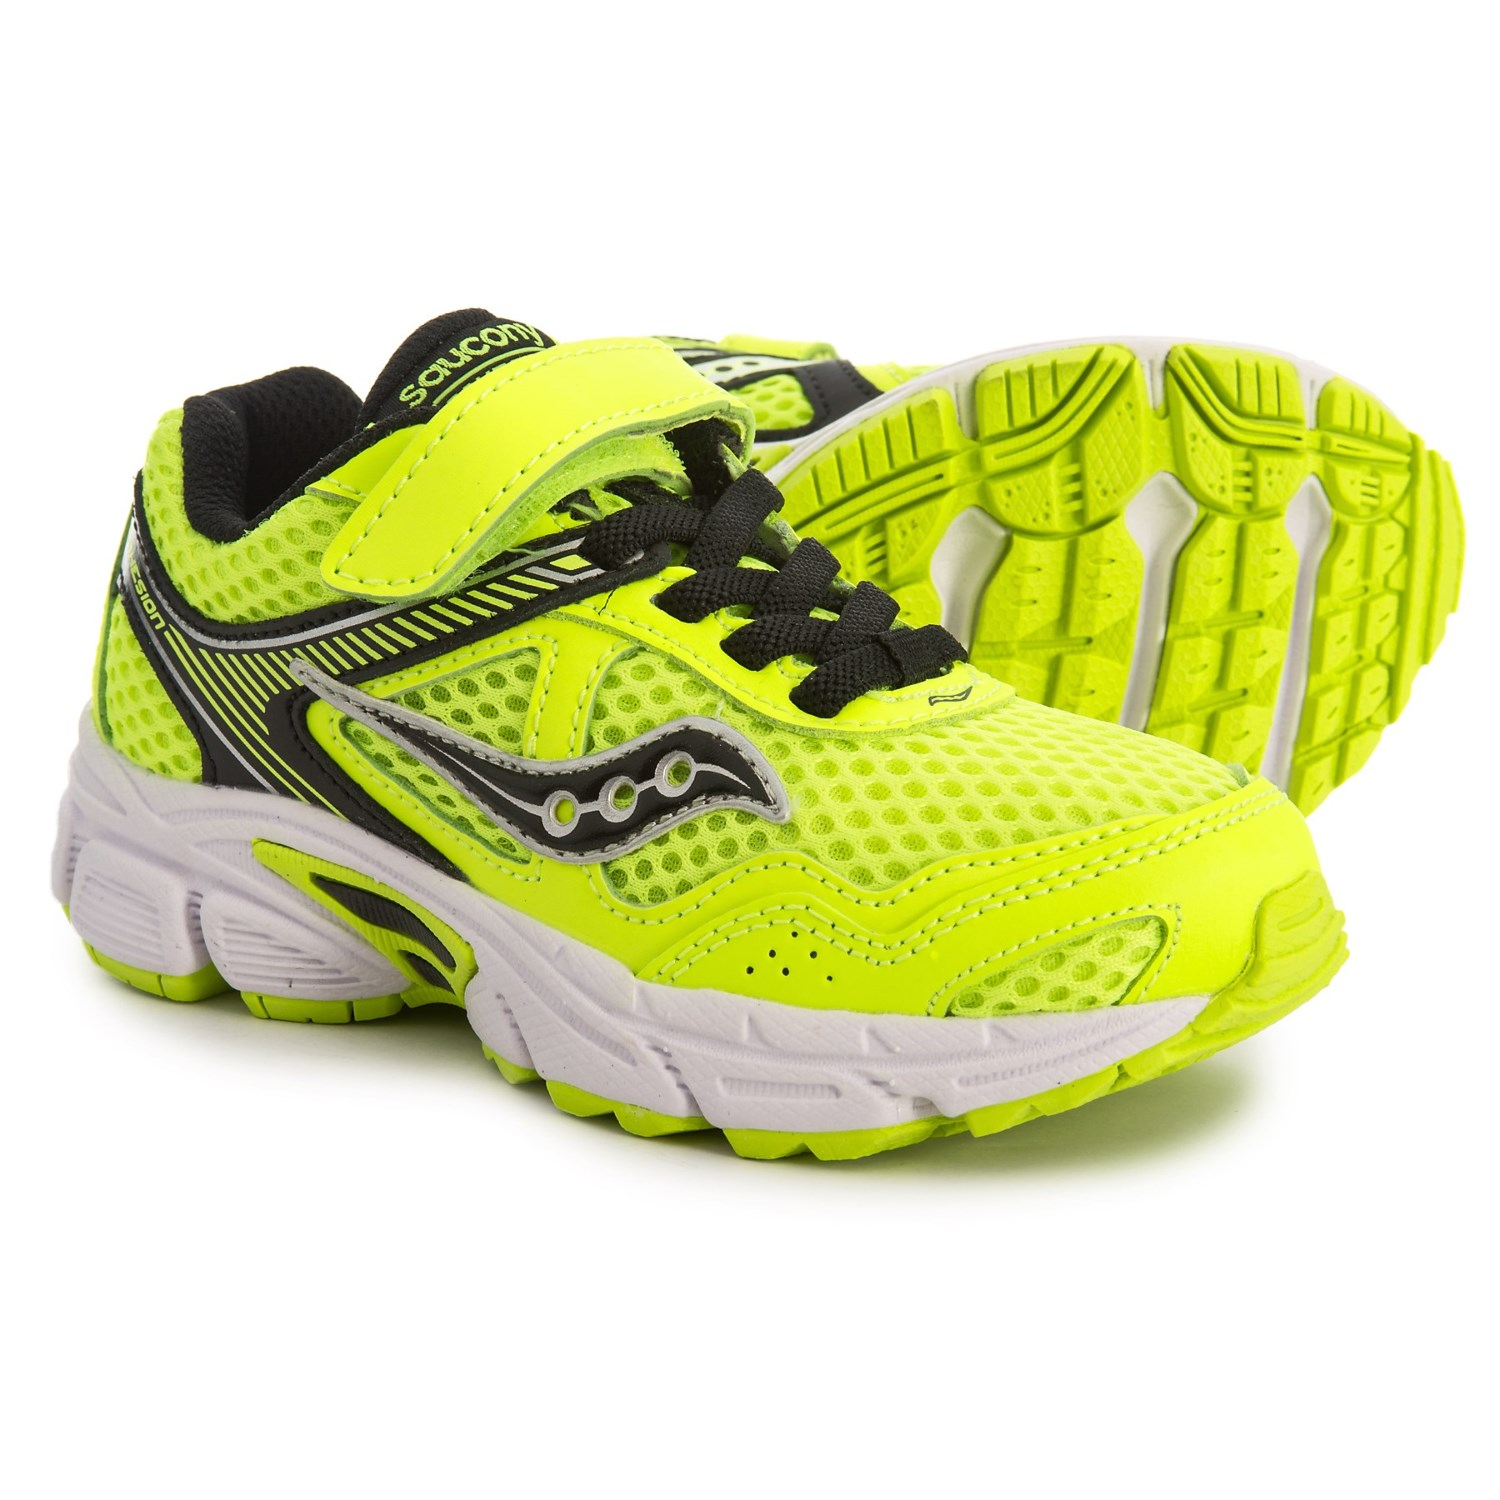 801e964b6e Saucony Cohesion 10 A/C Running Shoe (For Boys) - Save 49%